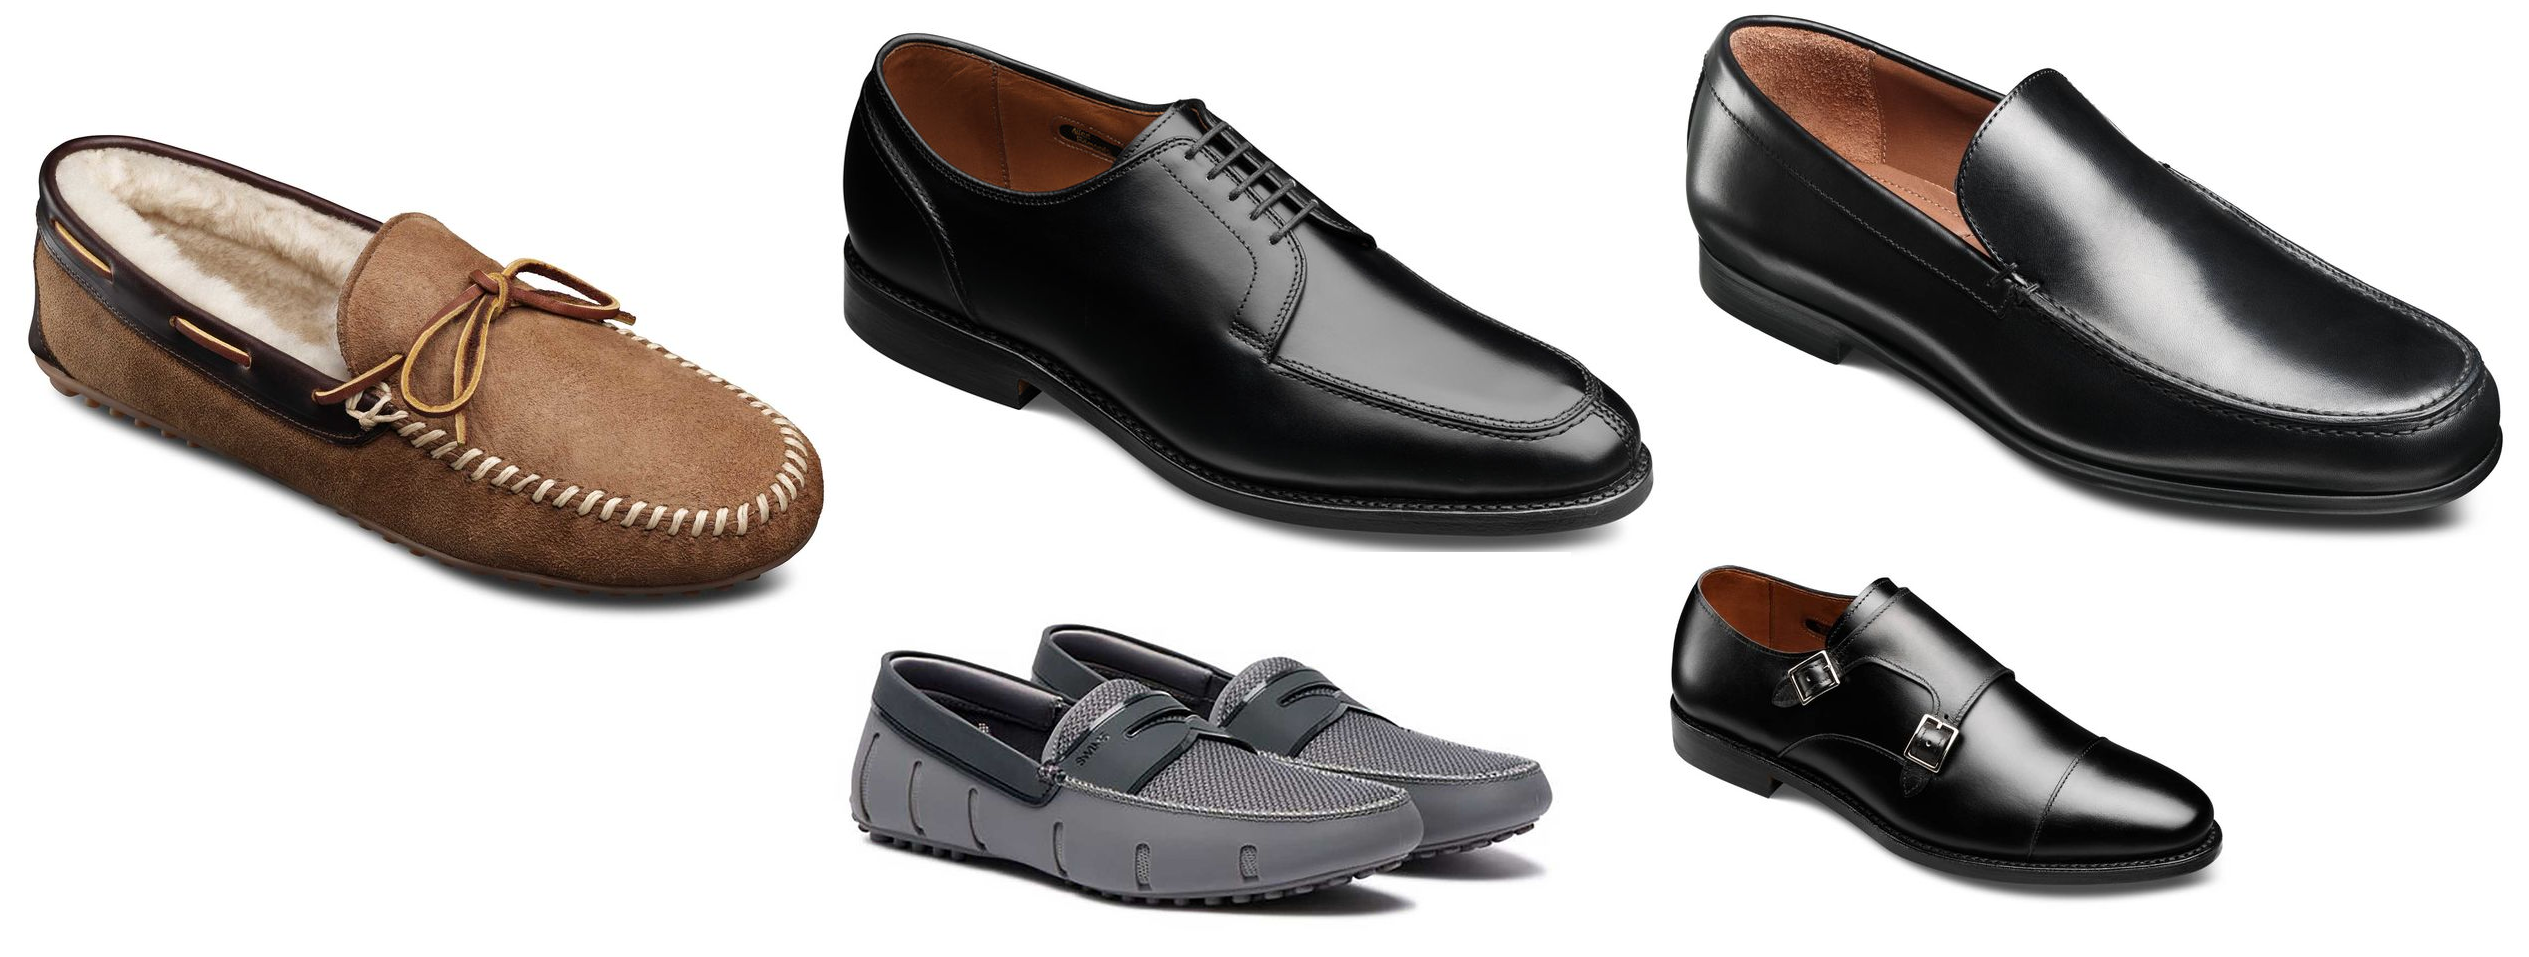 0dc37b21a84d Extra 20% Off Clearance and Factory Seconds at Allen Edmonds! (Sandman  Shearling Slipper  37! Lasalle  107!) + Extra  50 Off  250+ With Amex!